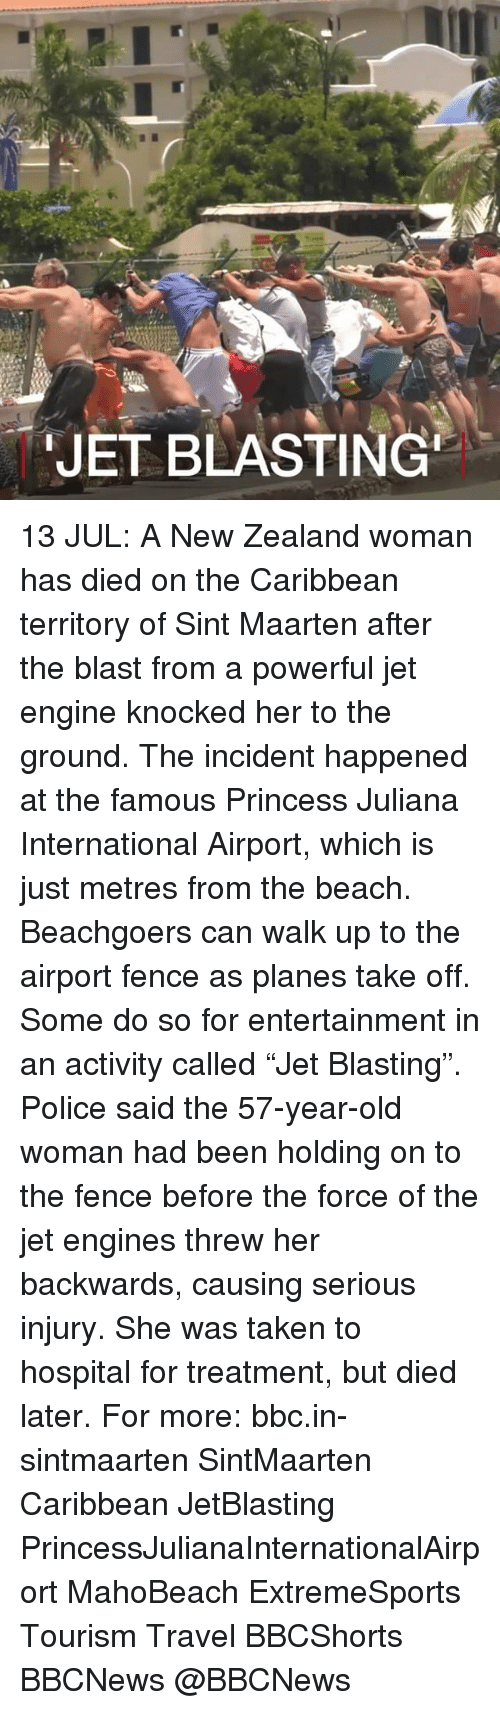 "Dieded: JET BLASTING 13 JUL: A New Zealand woman has died on the Caribbean territory of Sint Maarten after the blast from a powerful jet engine knocked her to the ground. The incident happened at the famous Princess Juliana International Airport, which is just metres from the beach. Beachgoers can walk up to the airport fence as planes take off. Some do so for entertainment in an activity called ""Jet Blasting"". Police said the 57-year-old woman had been holding on to the fence before the force of the jet engines threw her backwards, causing serious injury. She was taken to hospital for treatment, but died later. For more: bbc.in-sintmaarten SintMaarten Caribbean JetBlasting PrincessJulianaInternationalAirport MahoBeach ExtremeSports Tourism Travel BBCShorts BBCNews @BBCNews"